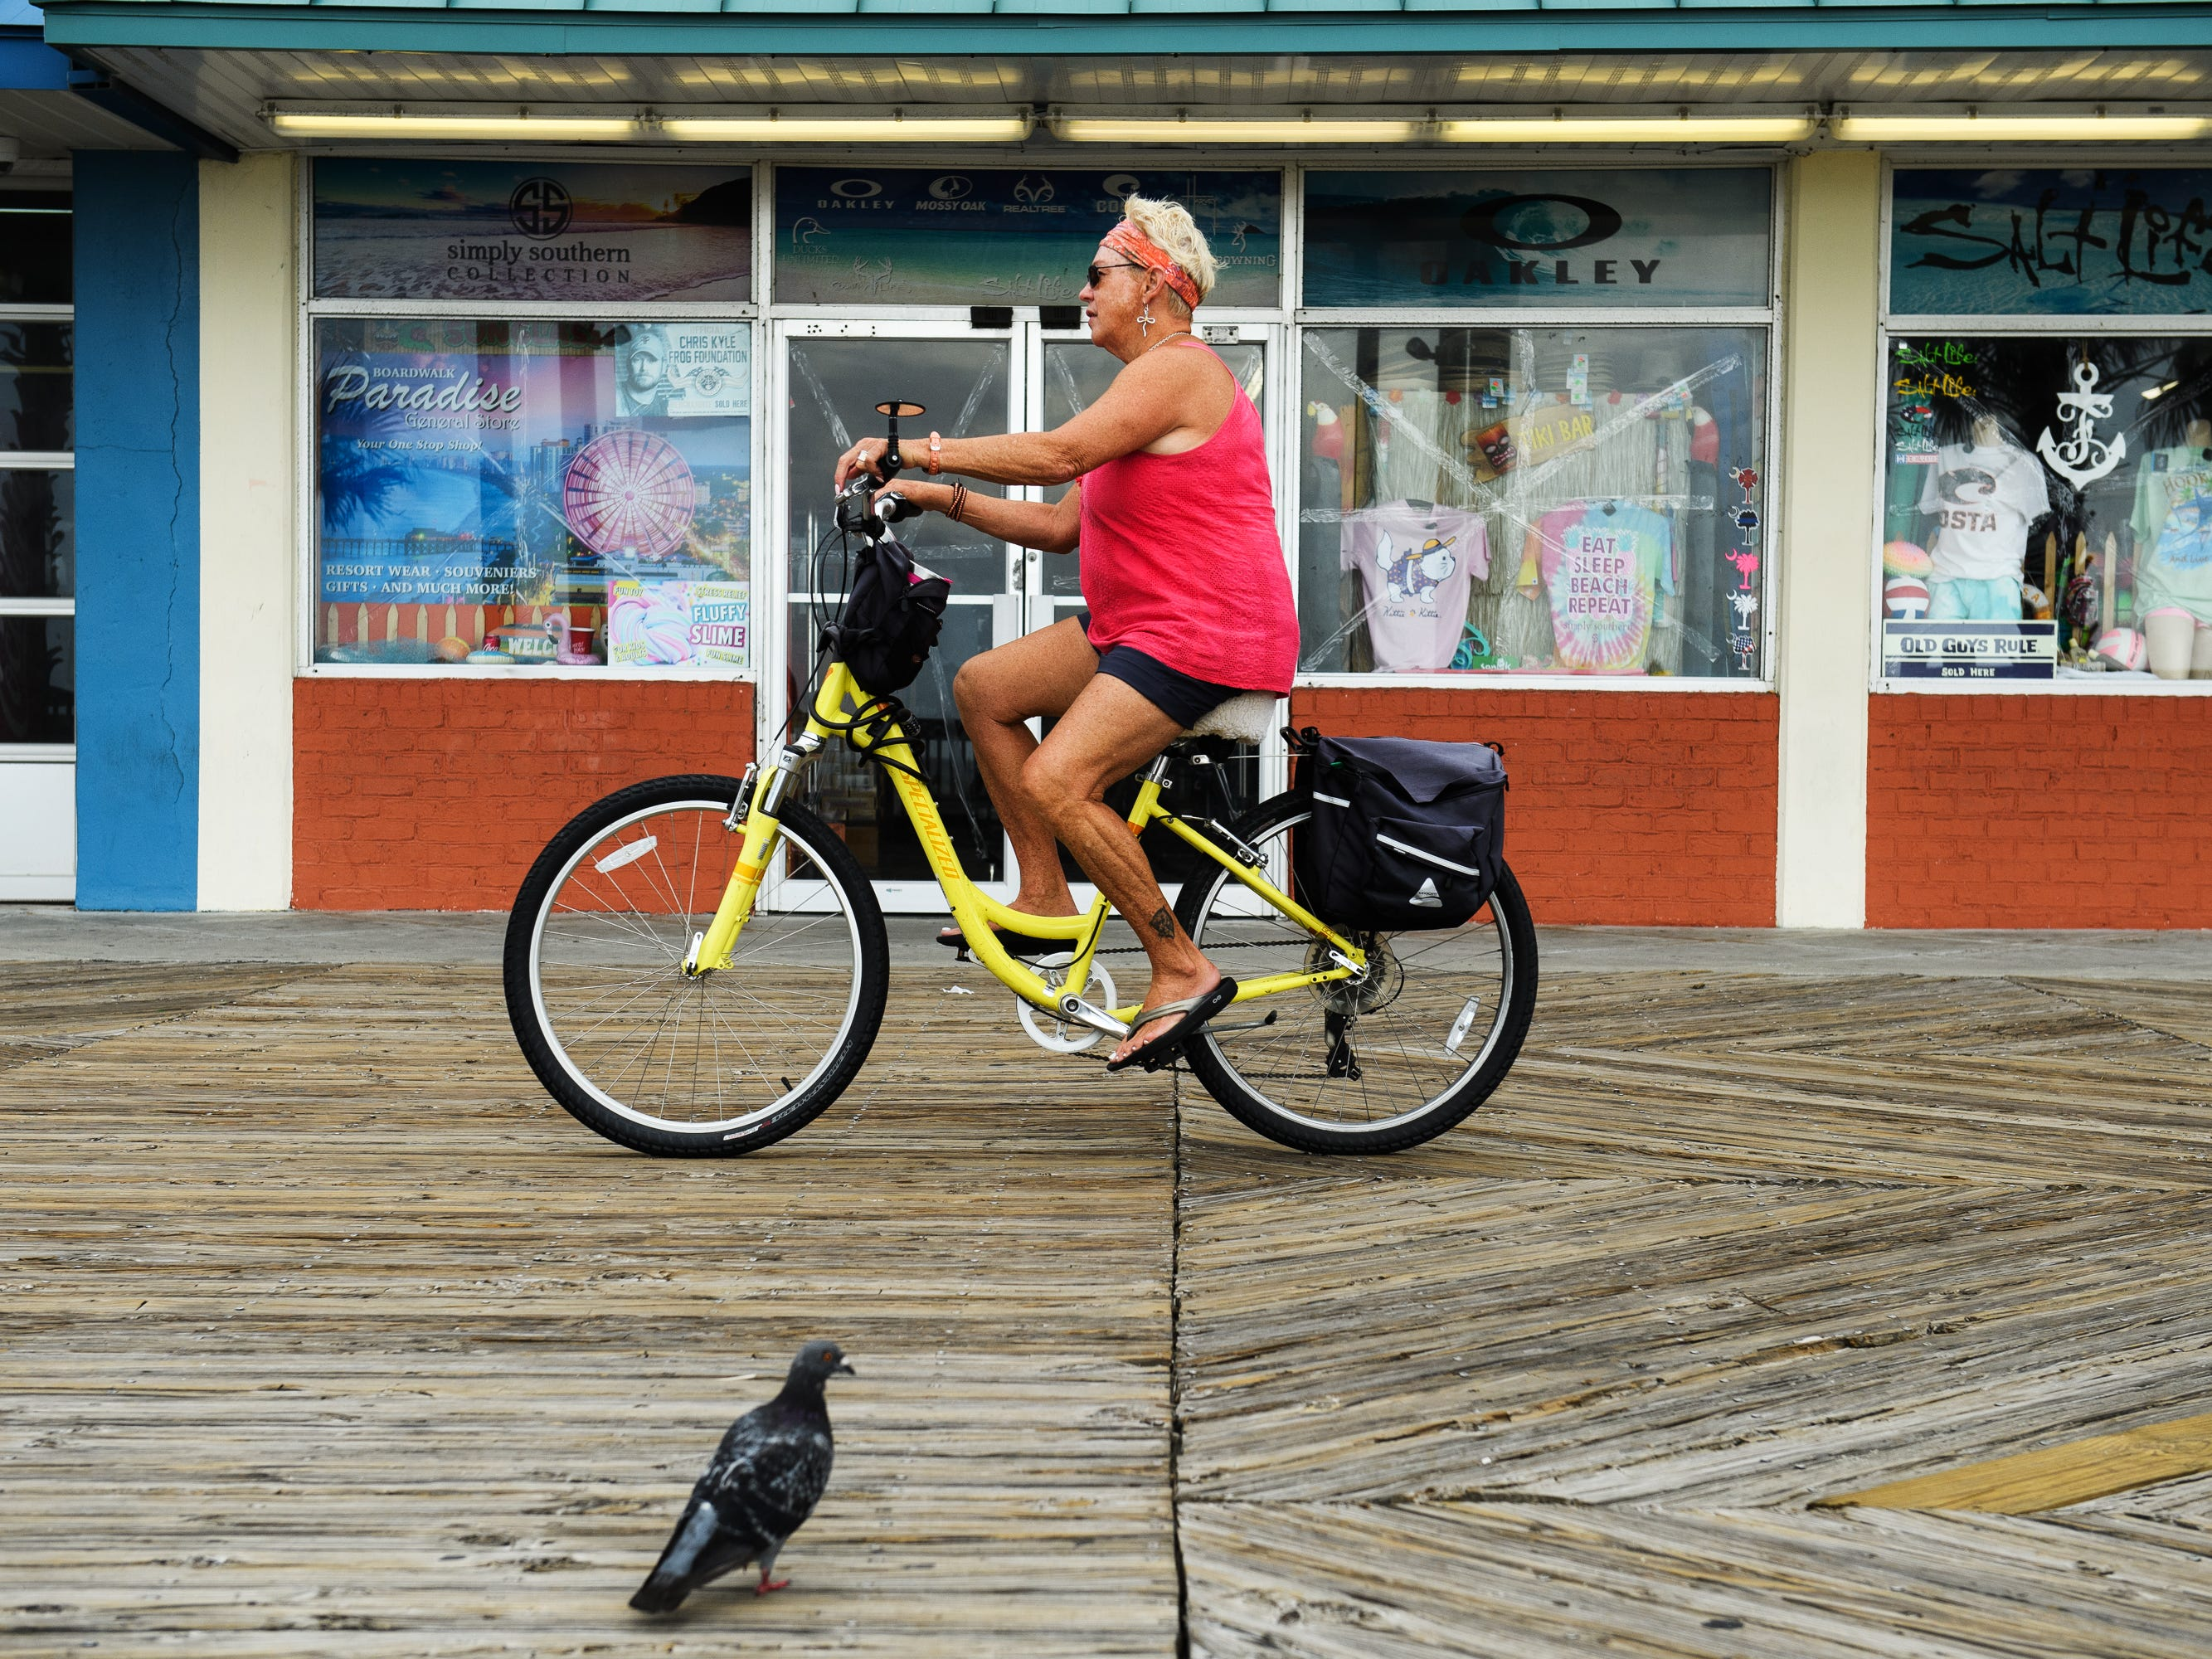 A woman rides her back at the Myrtle Beach Boardwalk and Promenade on Thursday, Sept. 13, 2018 hours before Hurricane Florence is expected to hit the area.